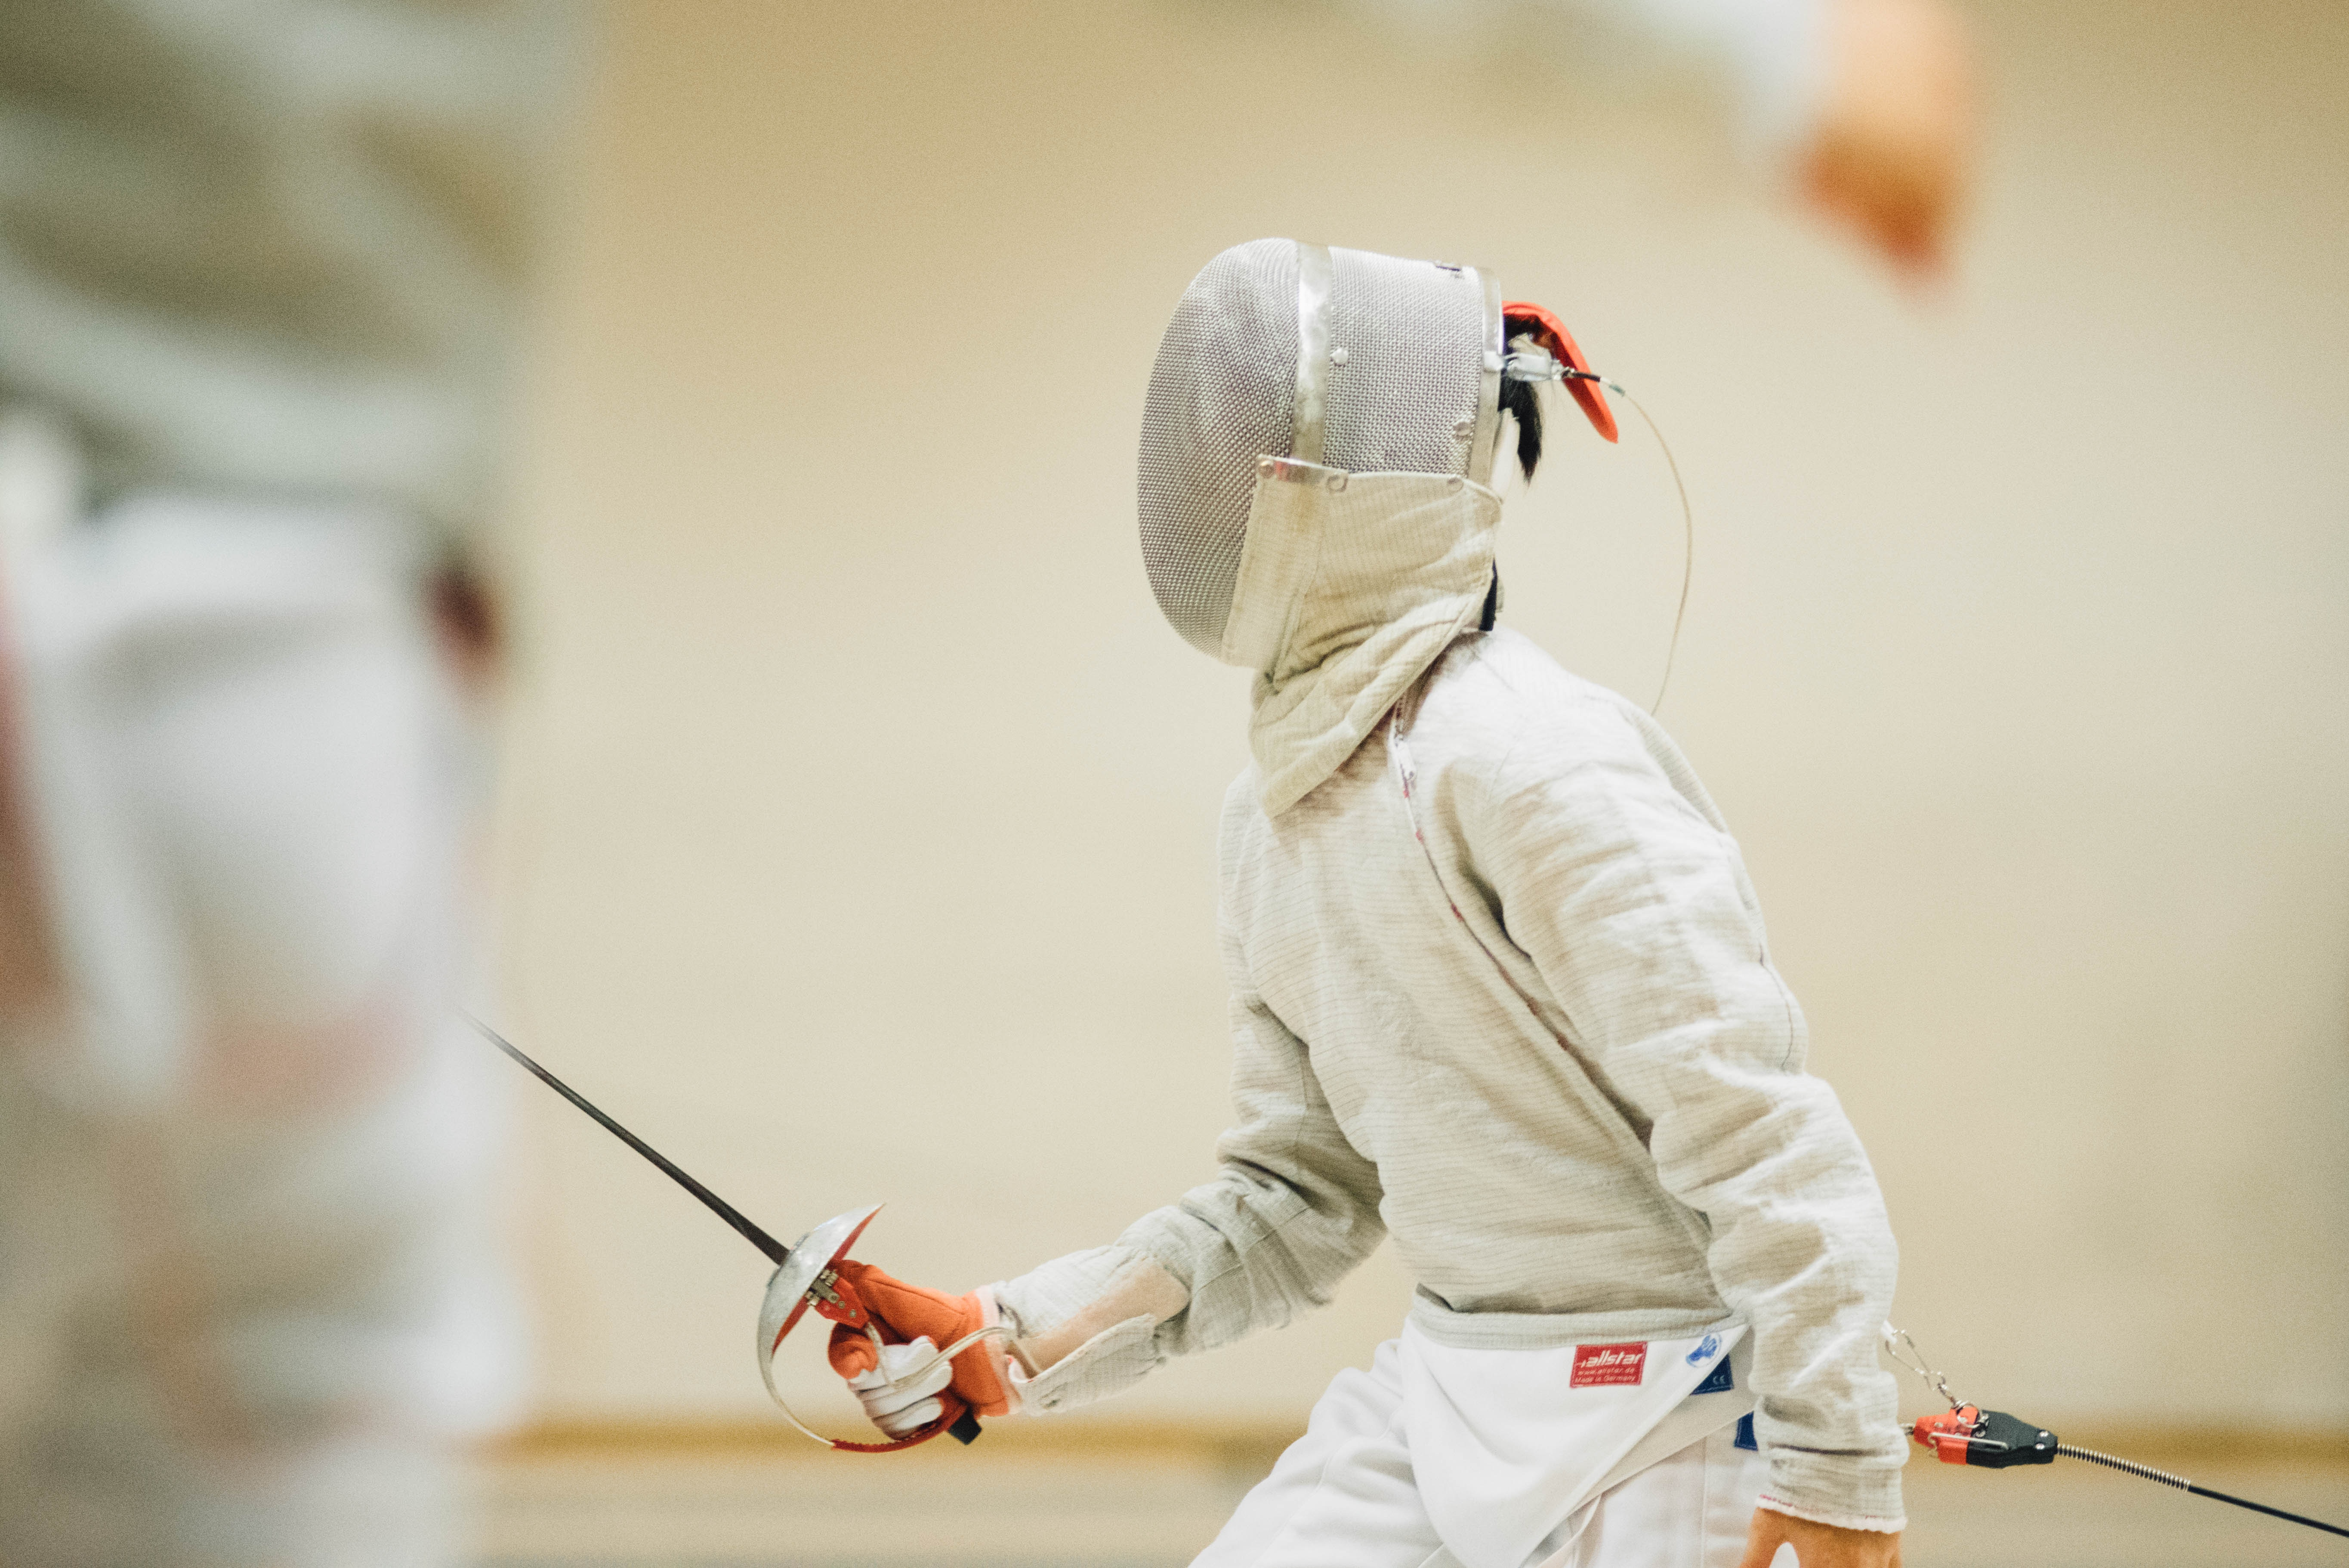 10 Best Fencing Masks Reviewed & Rated in 2019 | FightingReport